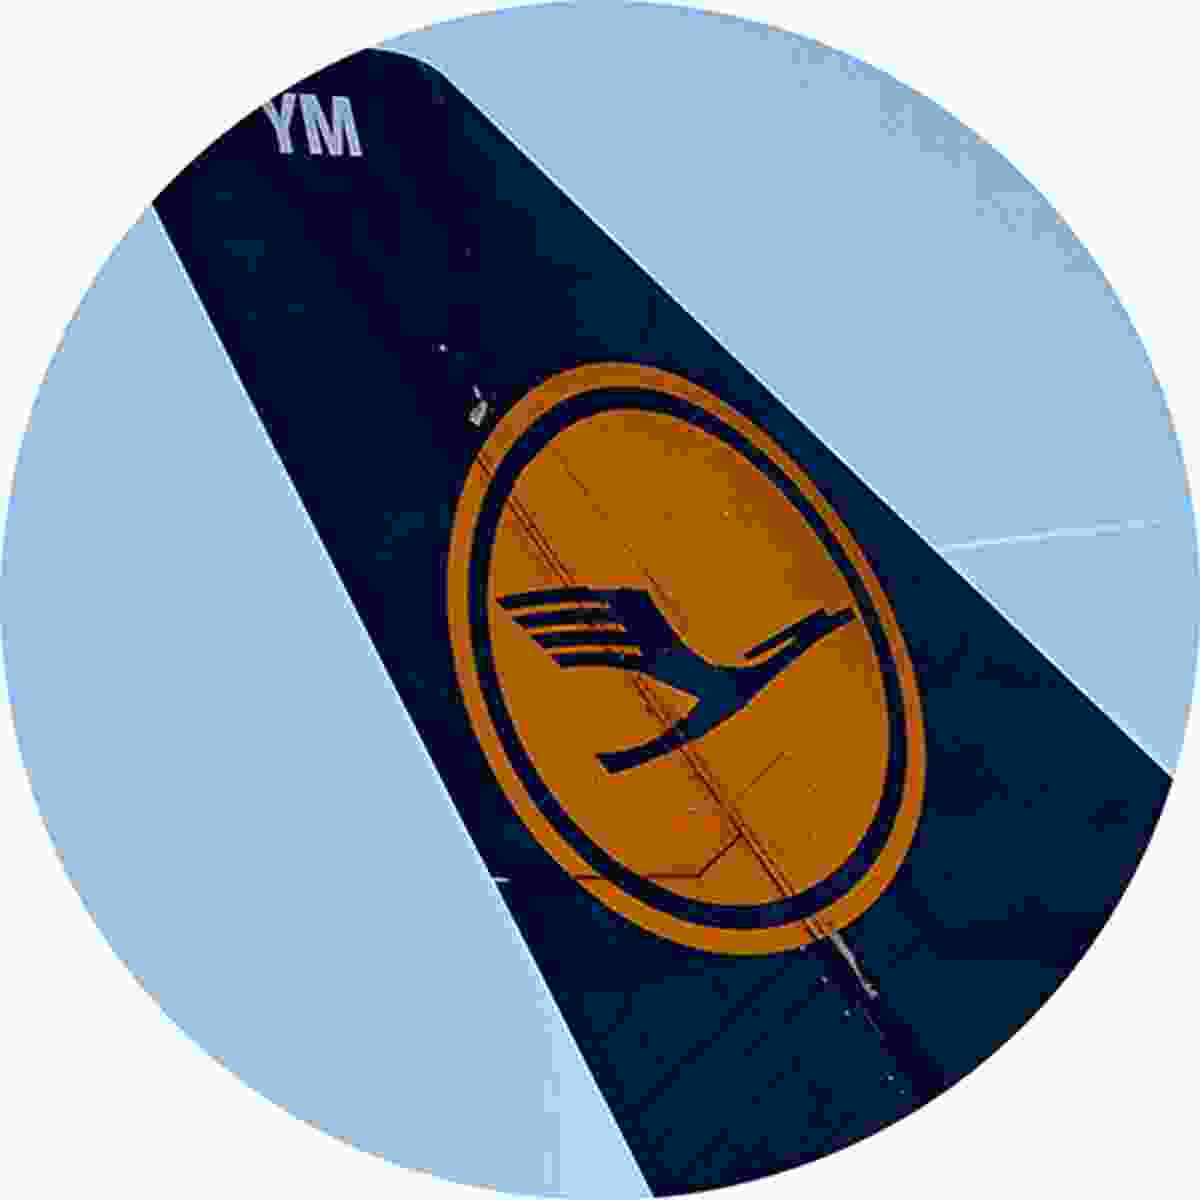 Lufthansa features stylised crane in flight, designed by Otto Firle in 1918 (Shutterstock)